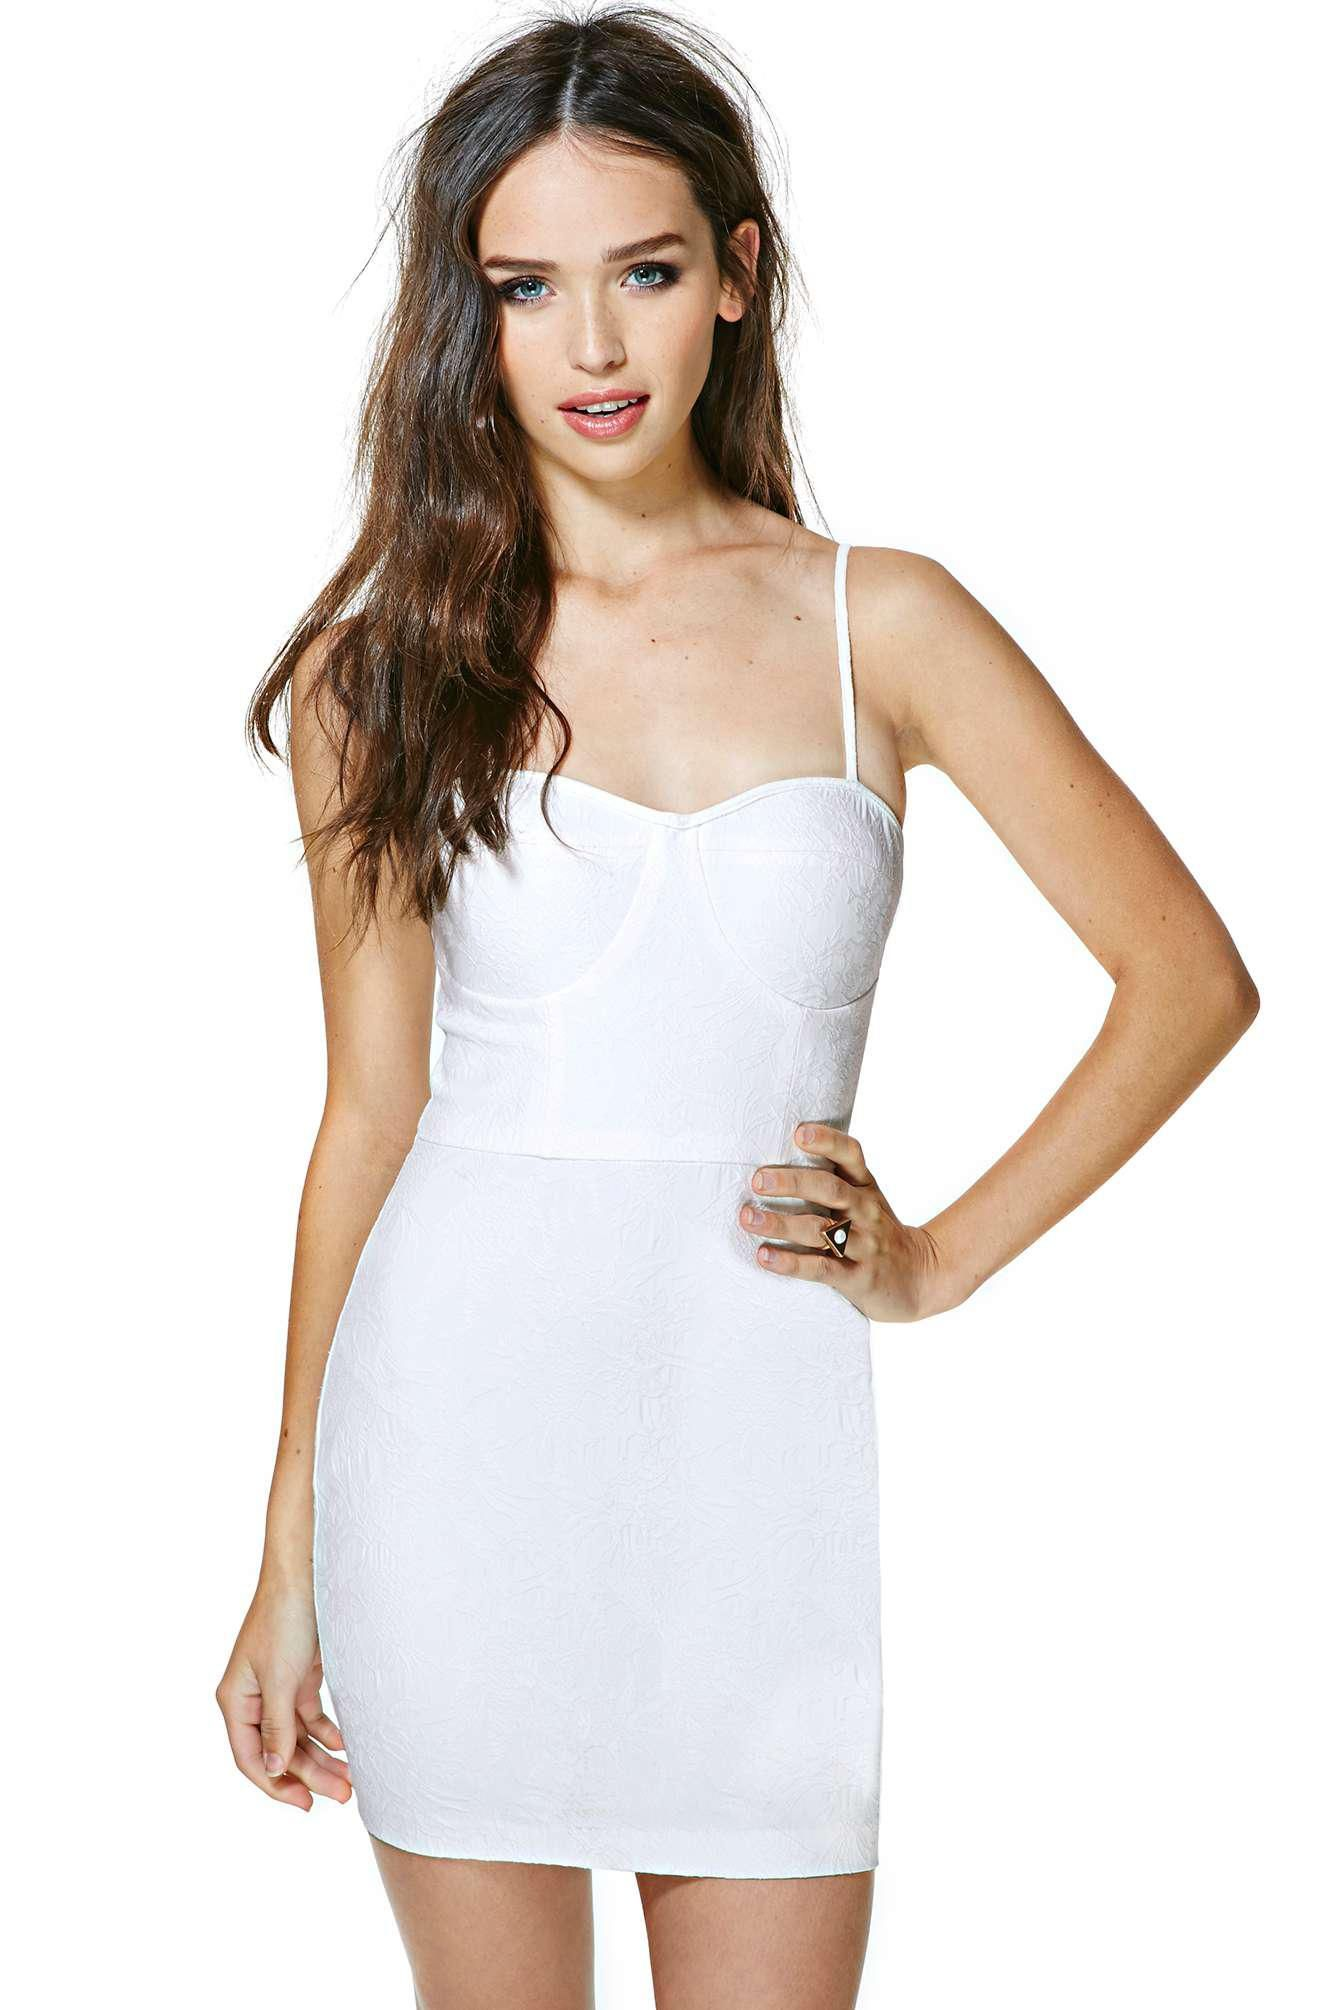 323eb034176a Awesome white body-con featuring a jacquard island print and a sweetheart  neckline with lightly p.